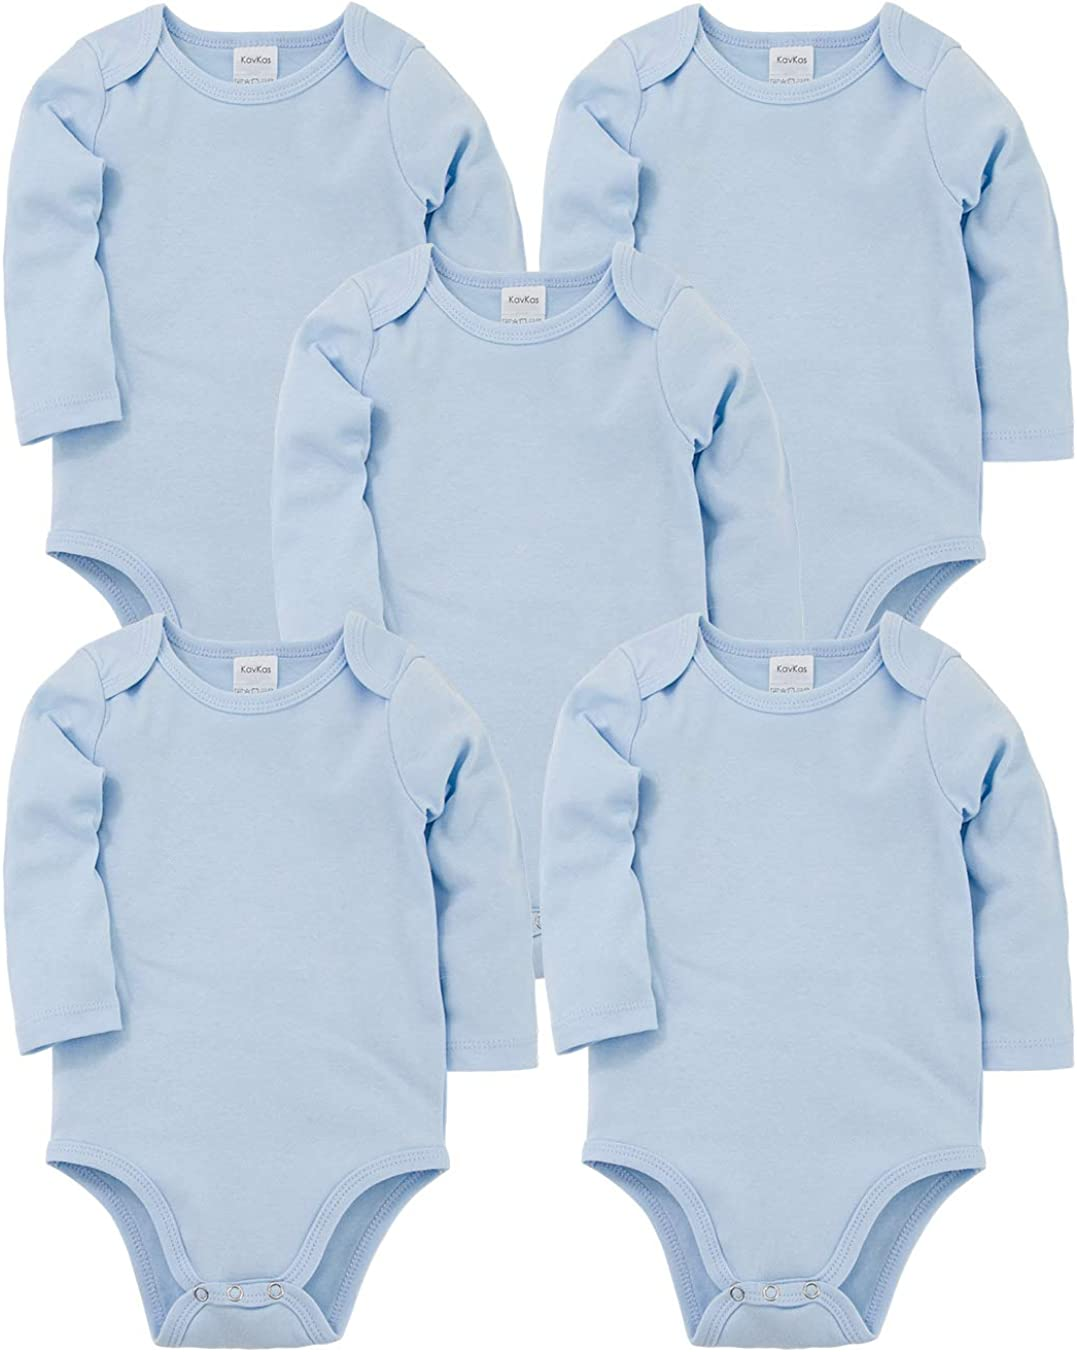 kavkas Baby Long Sleeve Onesies Infant Boys Girls Soft Cotton Bodysuit 5 Pack Newborn Undershirts